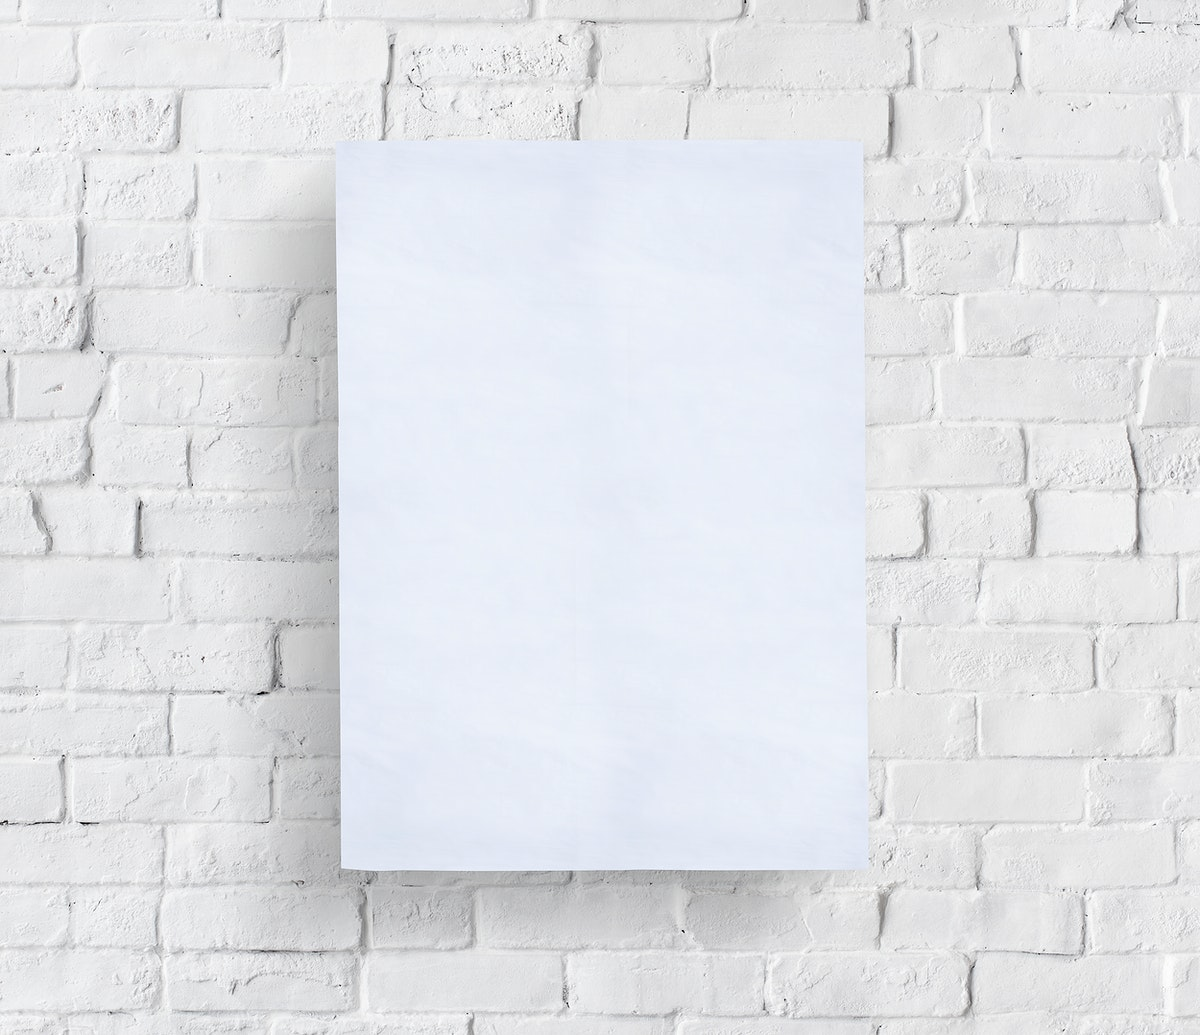 Blank placard on the wall